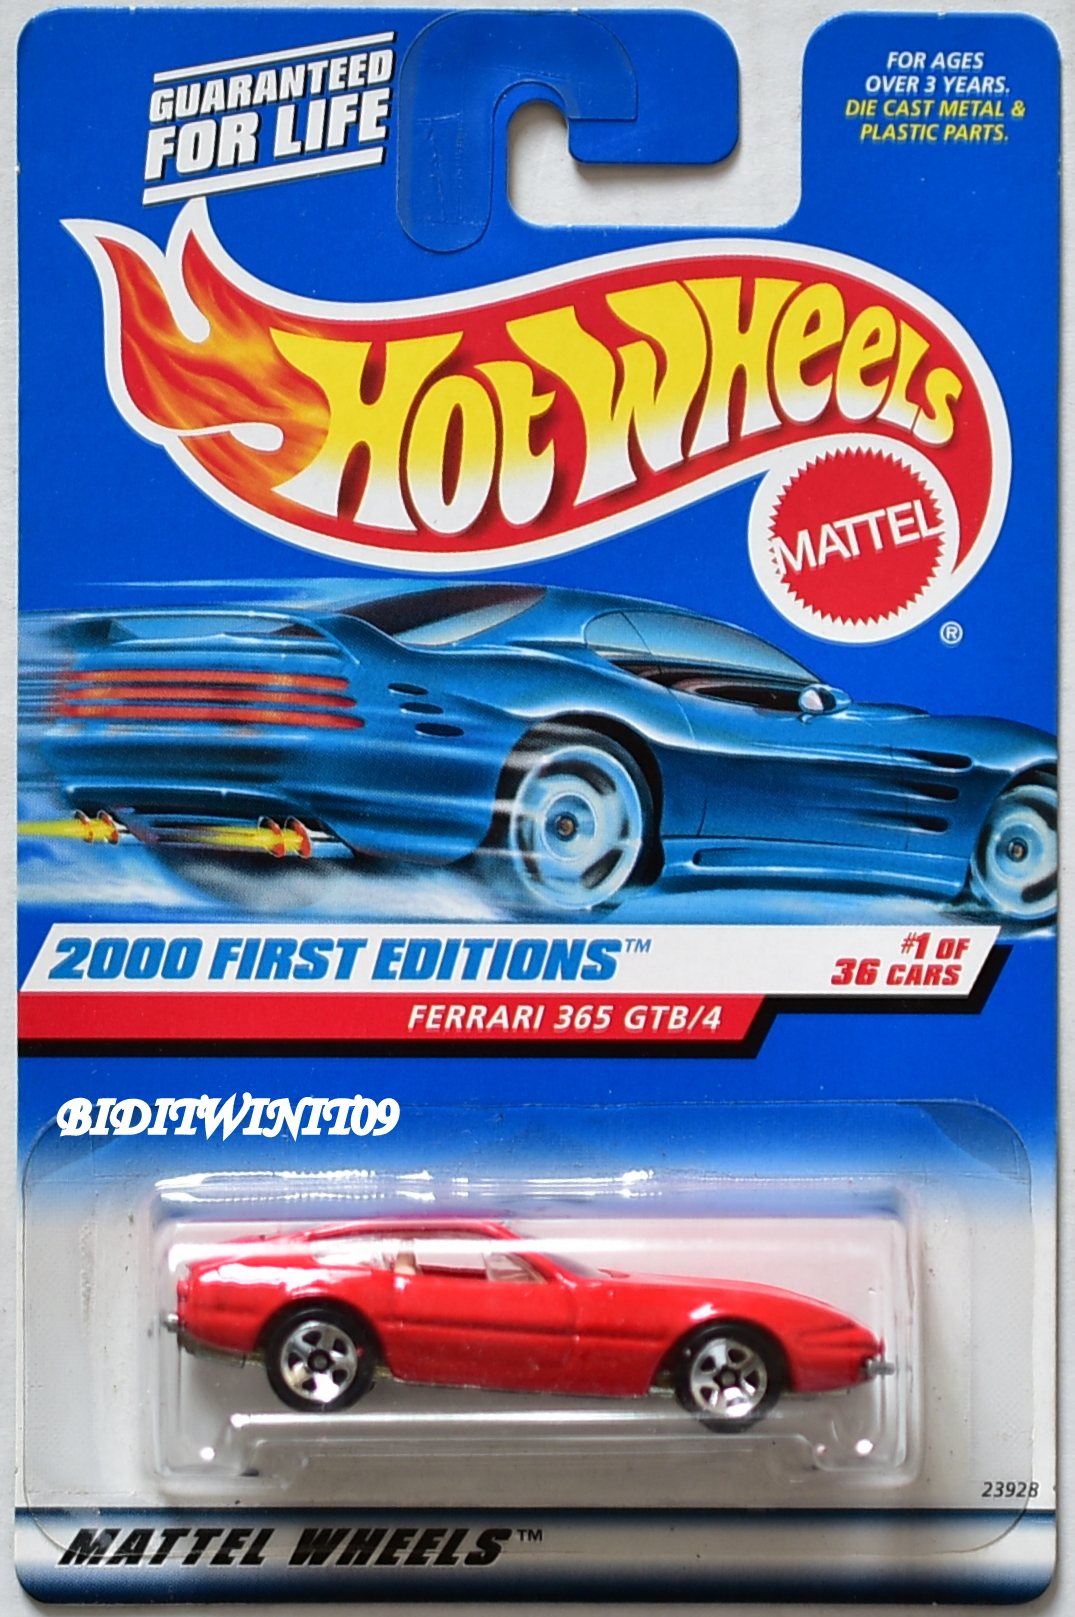 HOT WHEELS 2000 FIRST EDITIONS FERRARI 365 GTB/4 RED W 5 SPK